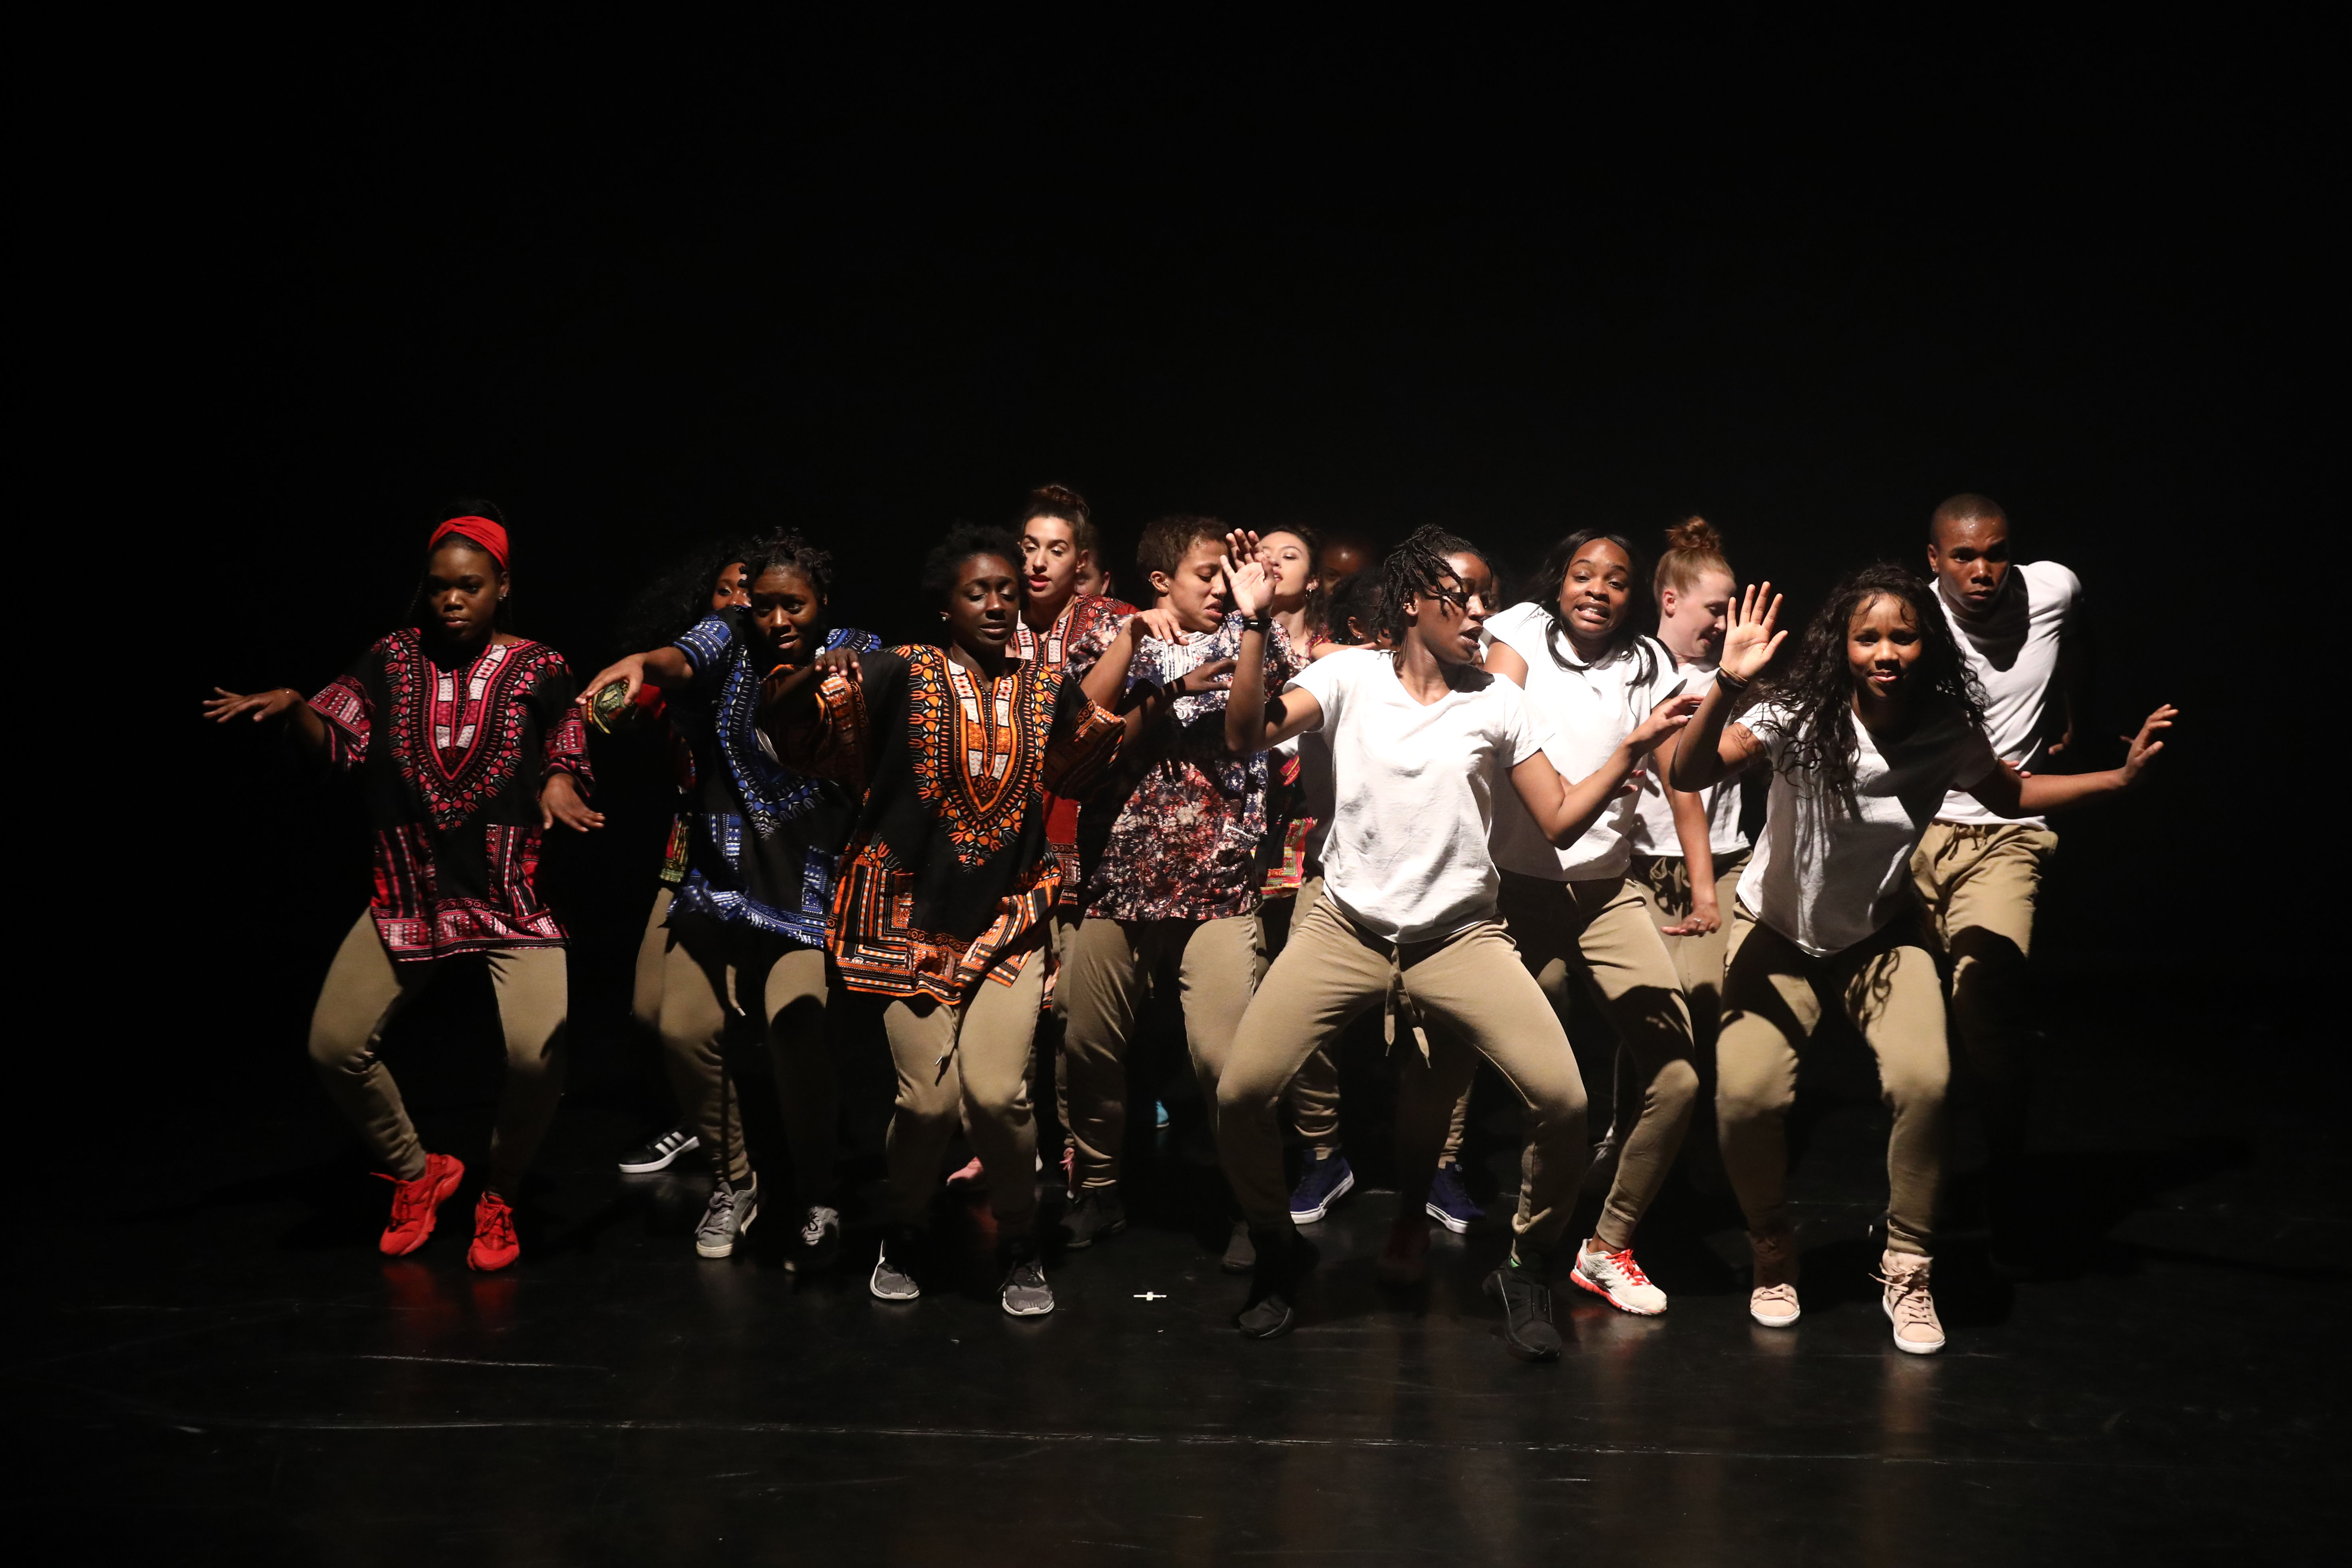 A group of BFA and MFA students dance on stage at Conwell Dance Theater.